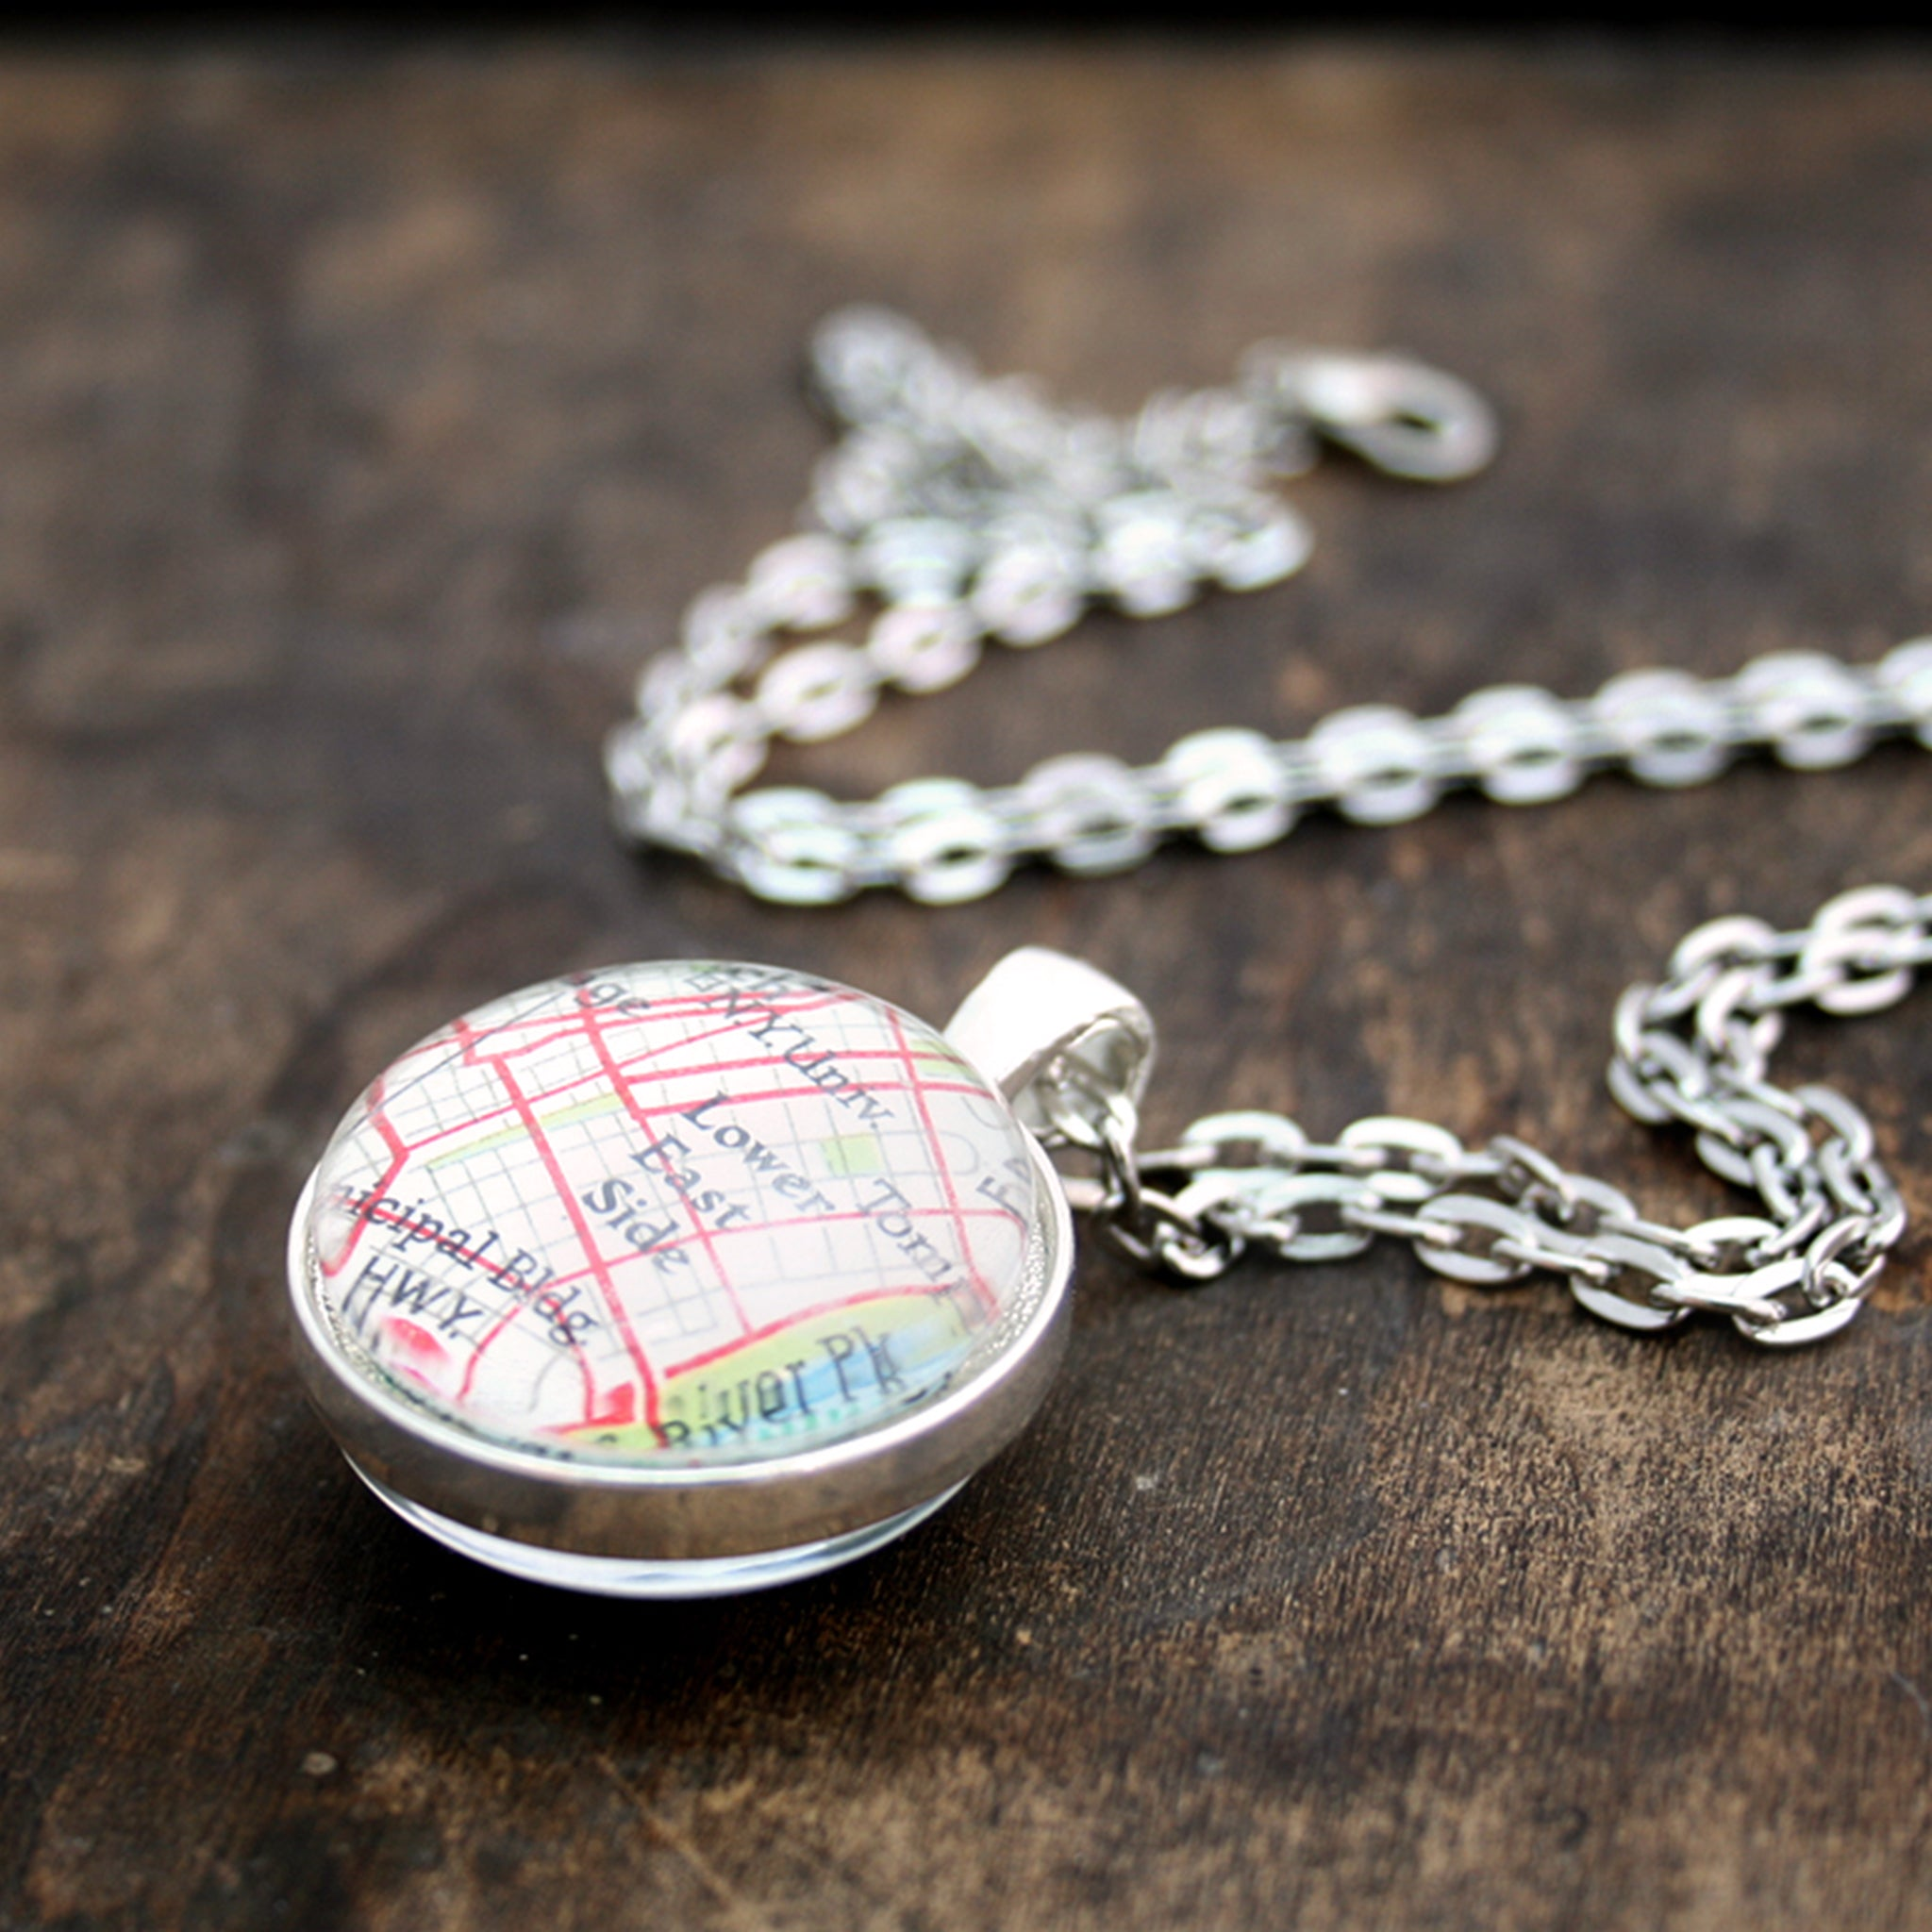 Silver tone double sided pendant necklace featuring map of New York City